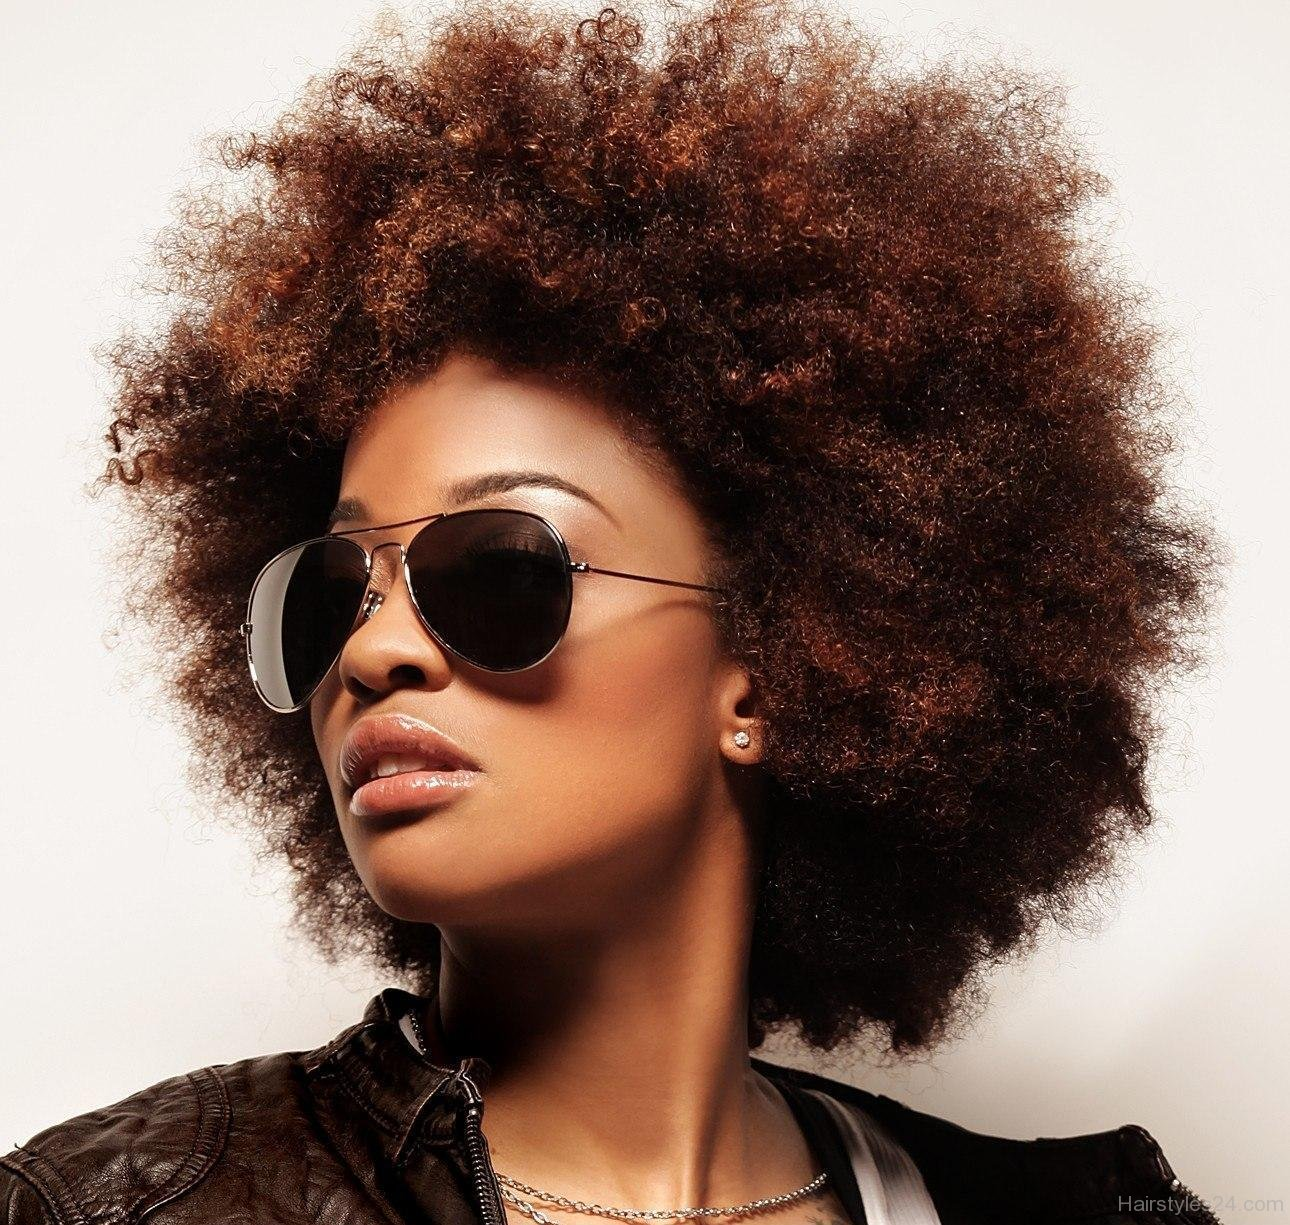 cutest afro hairstyles for black women   hairstyles 2017, hair